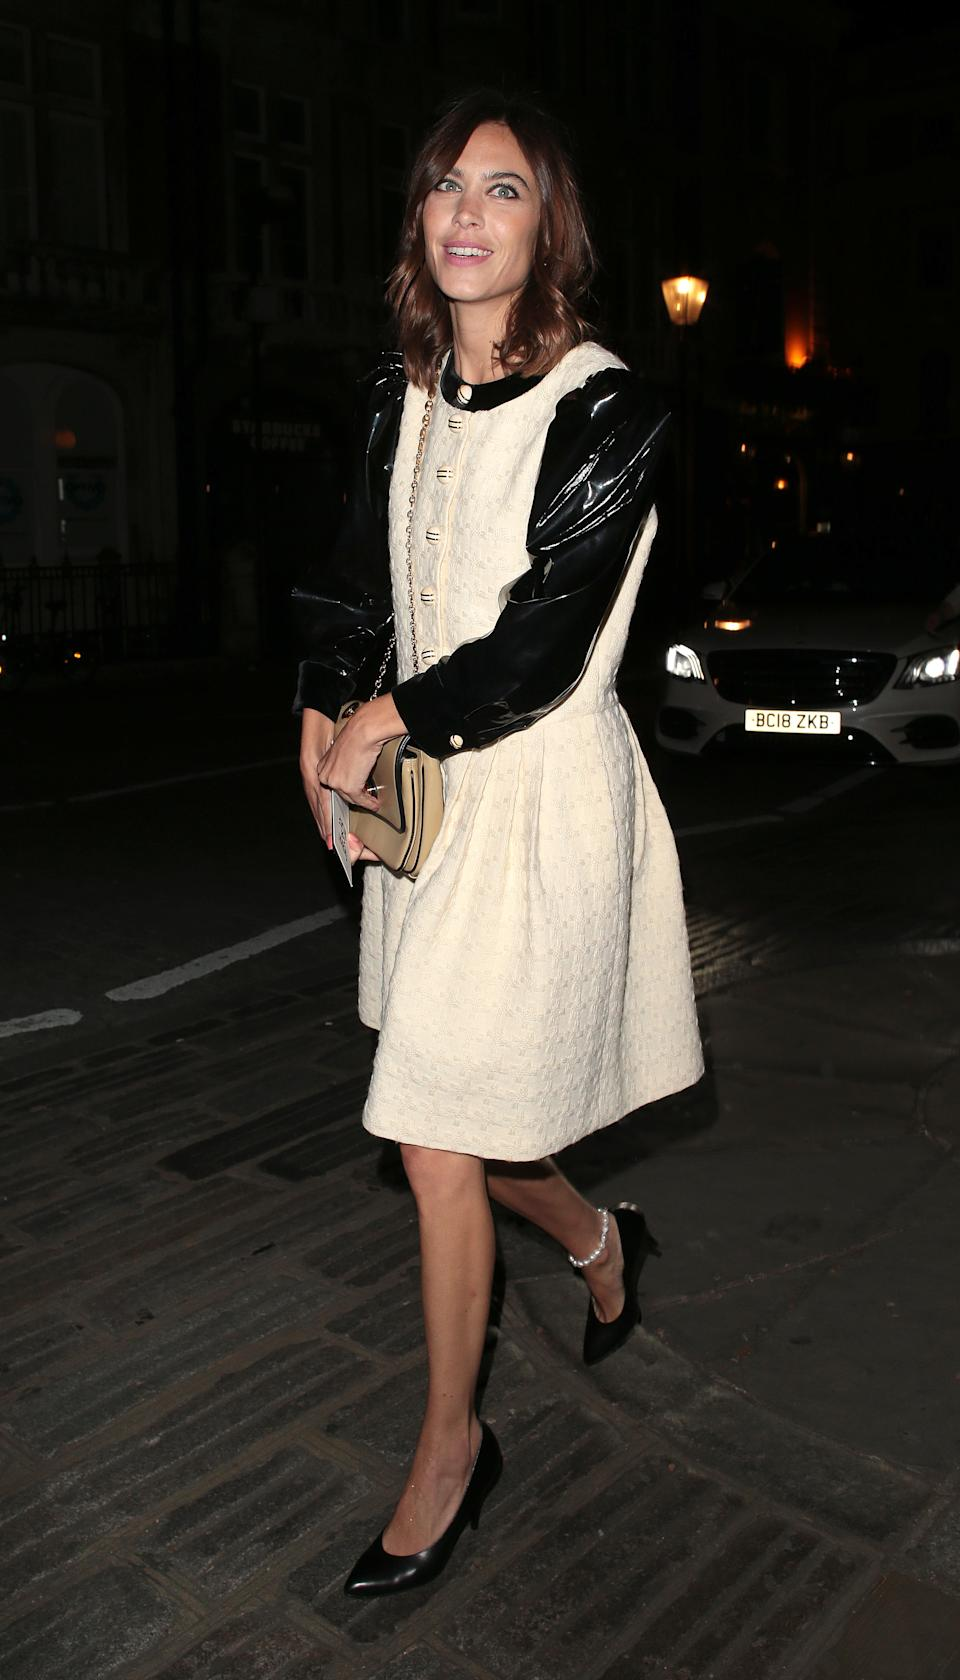 Alexa Chung seen attending the Fashion For Relief gala event during London Fashion Week [Photo: Getty Images]